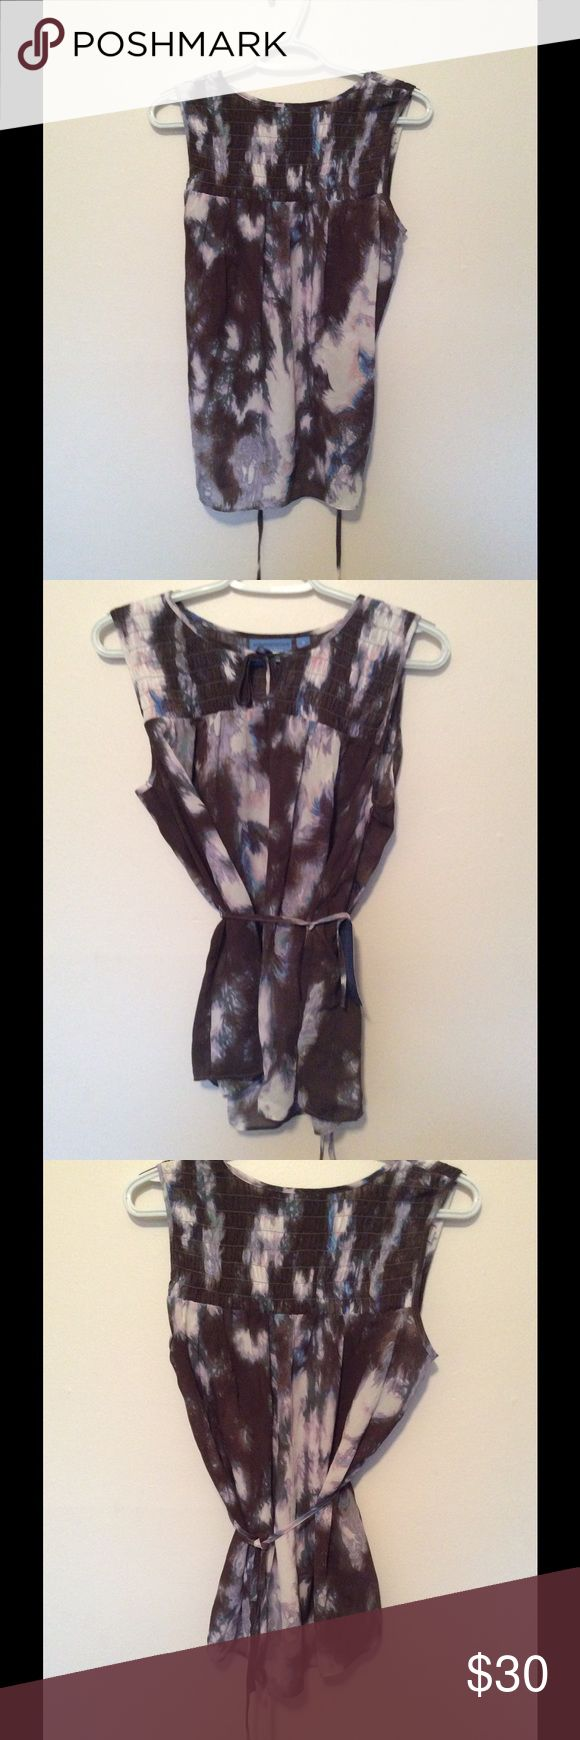 simply vera wang top🎈 Beautiful tie-dye brown and purple top with tie string.  New with tags! Simply Vera Vera Wang Tops Tank Tops